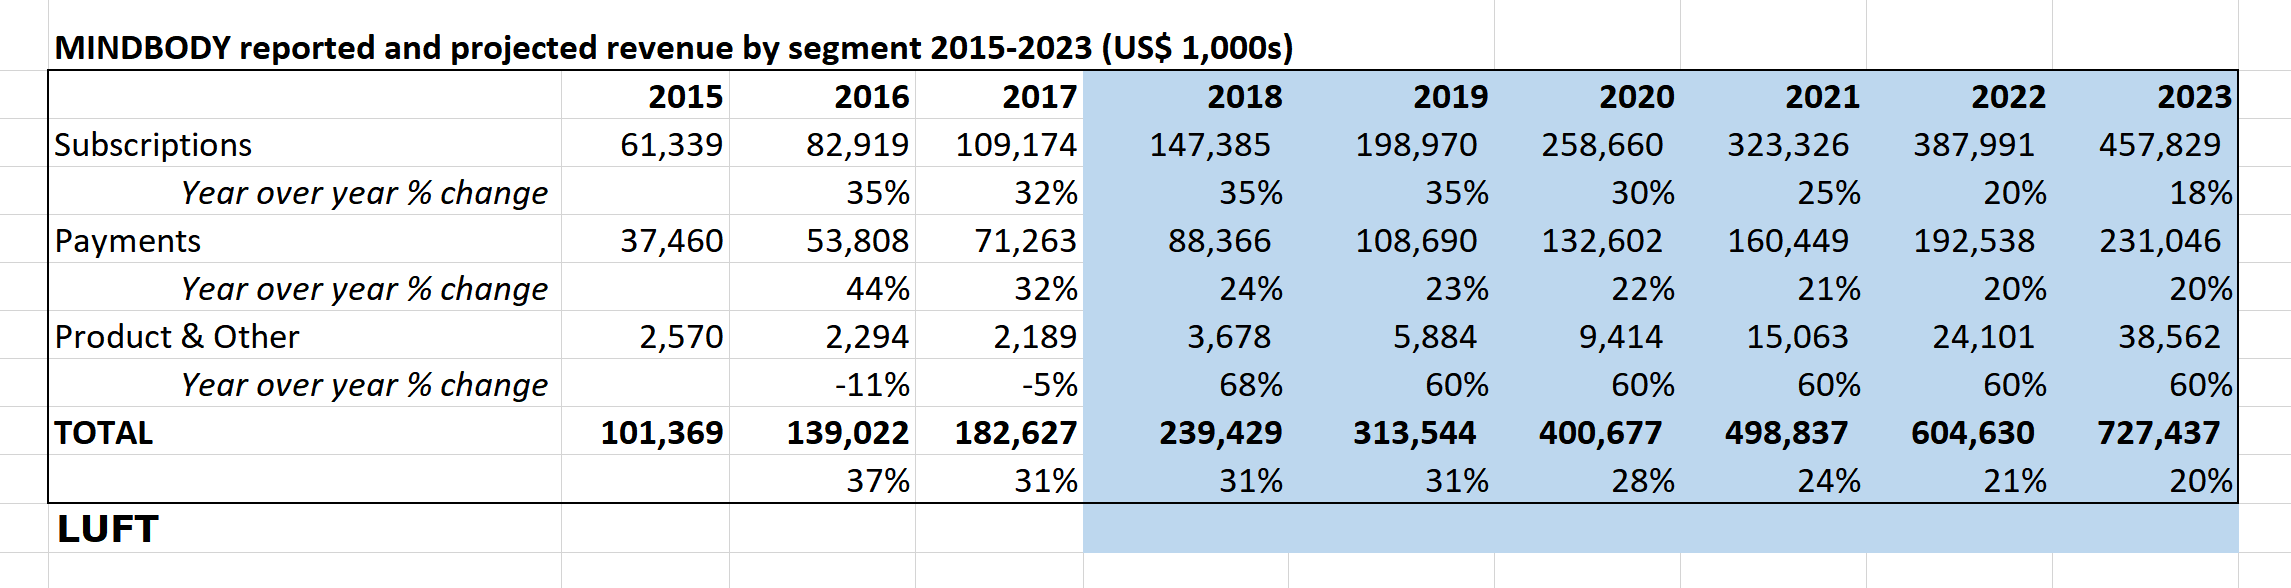 Notes: Revenue reported through Q3 2018. Estimates for full year 2018 were calculated by averaging year-over-year change in first three quarters. Projections for 2019 to 2023 are based on best guess and are intended to show general trajectory.